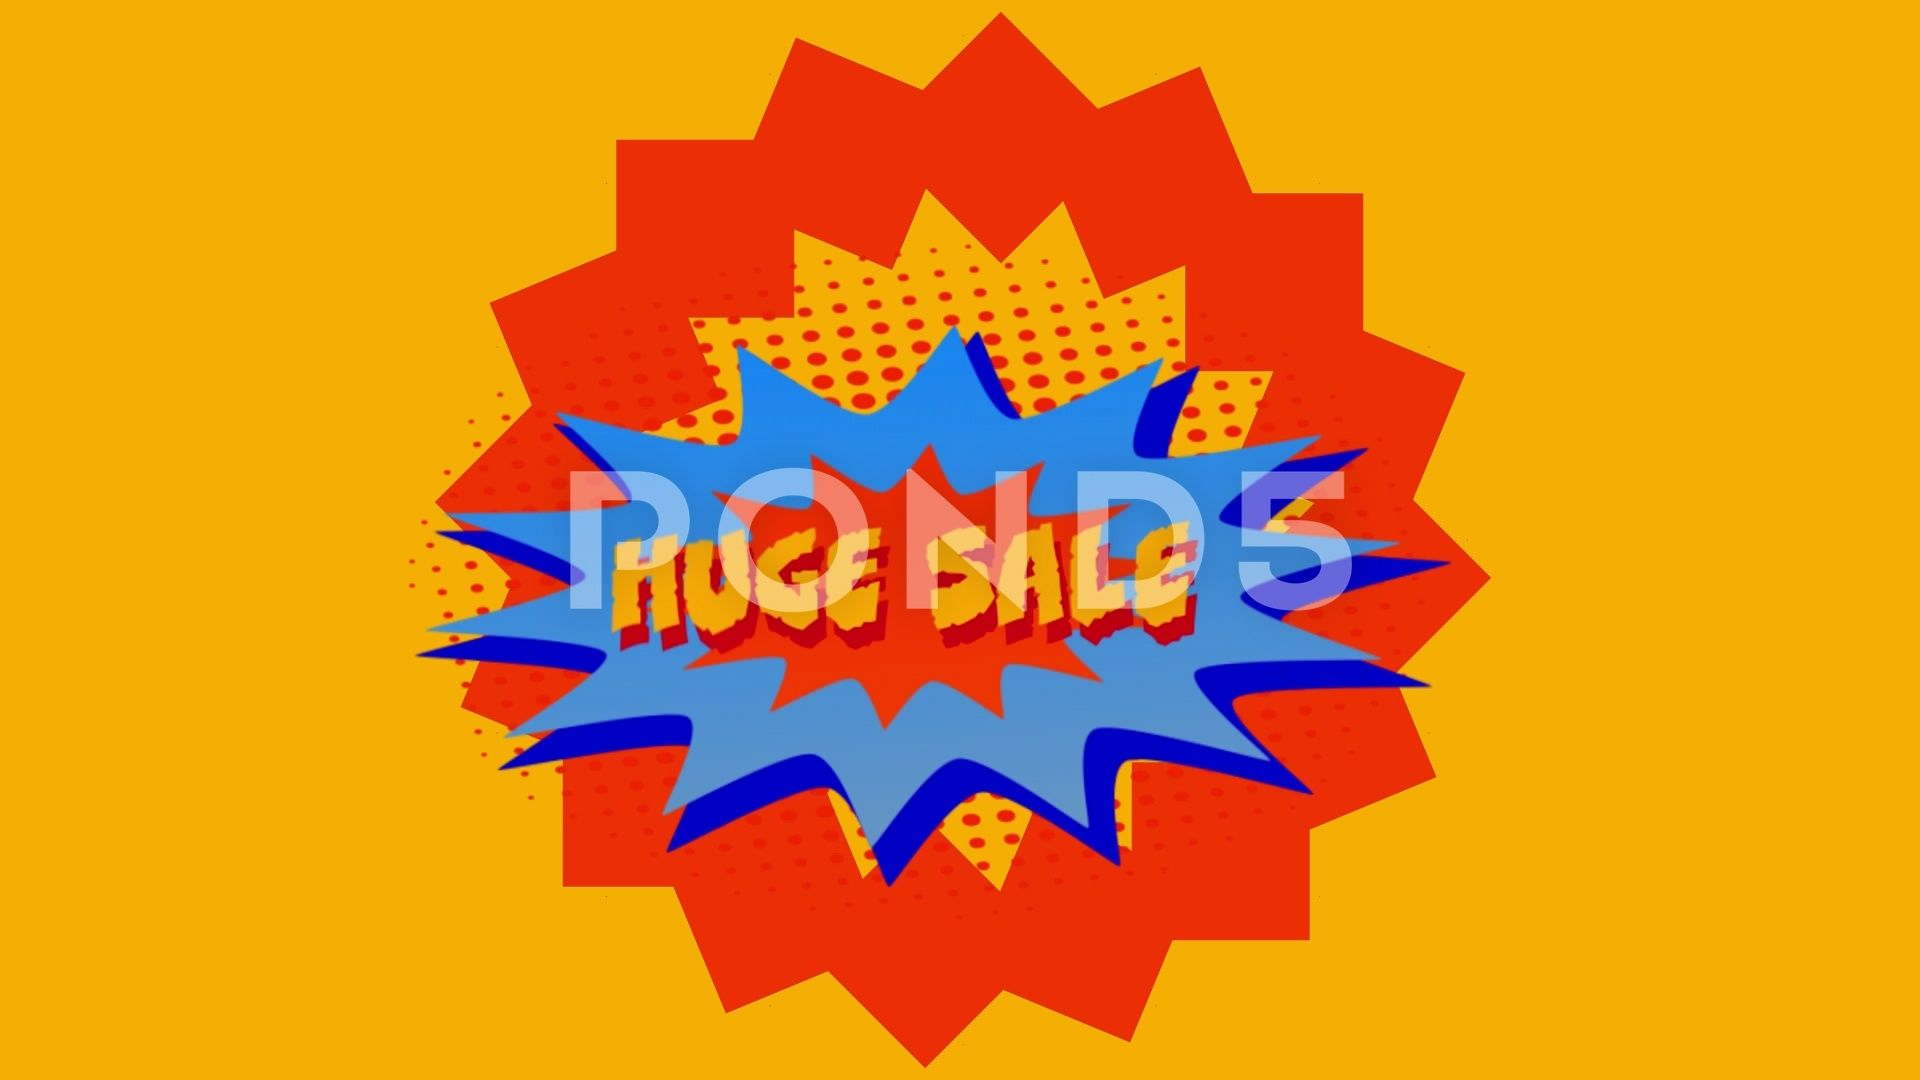 Huge Sale Graphic In Red And Blue Explosion On Yellow Background